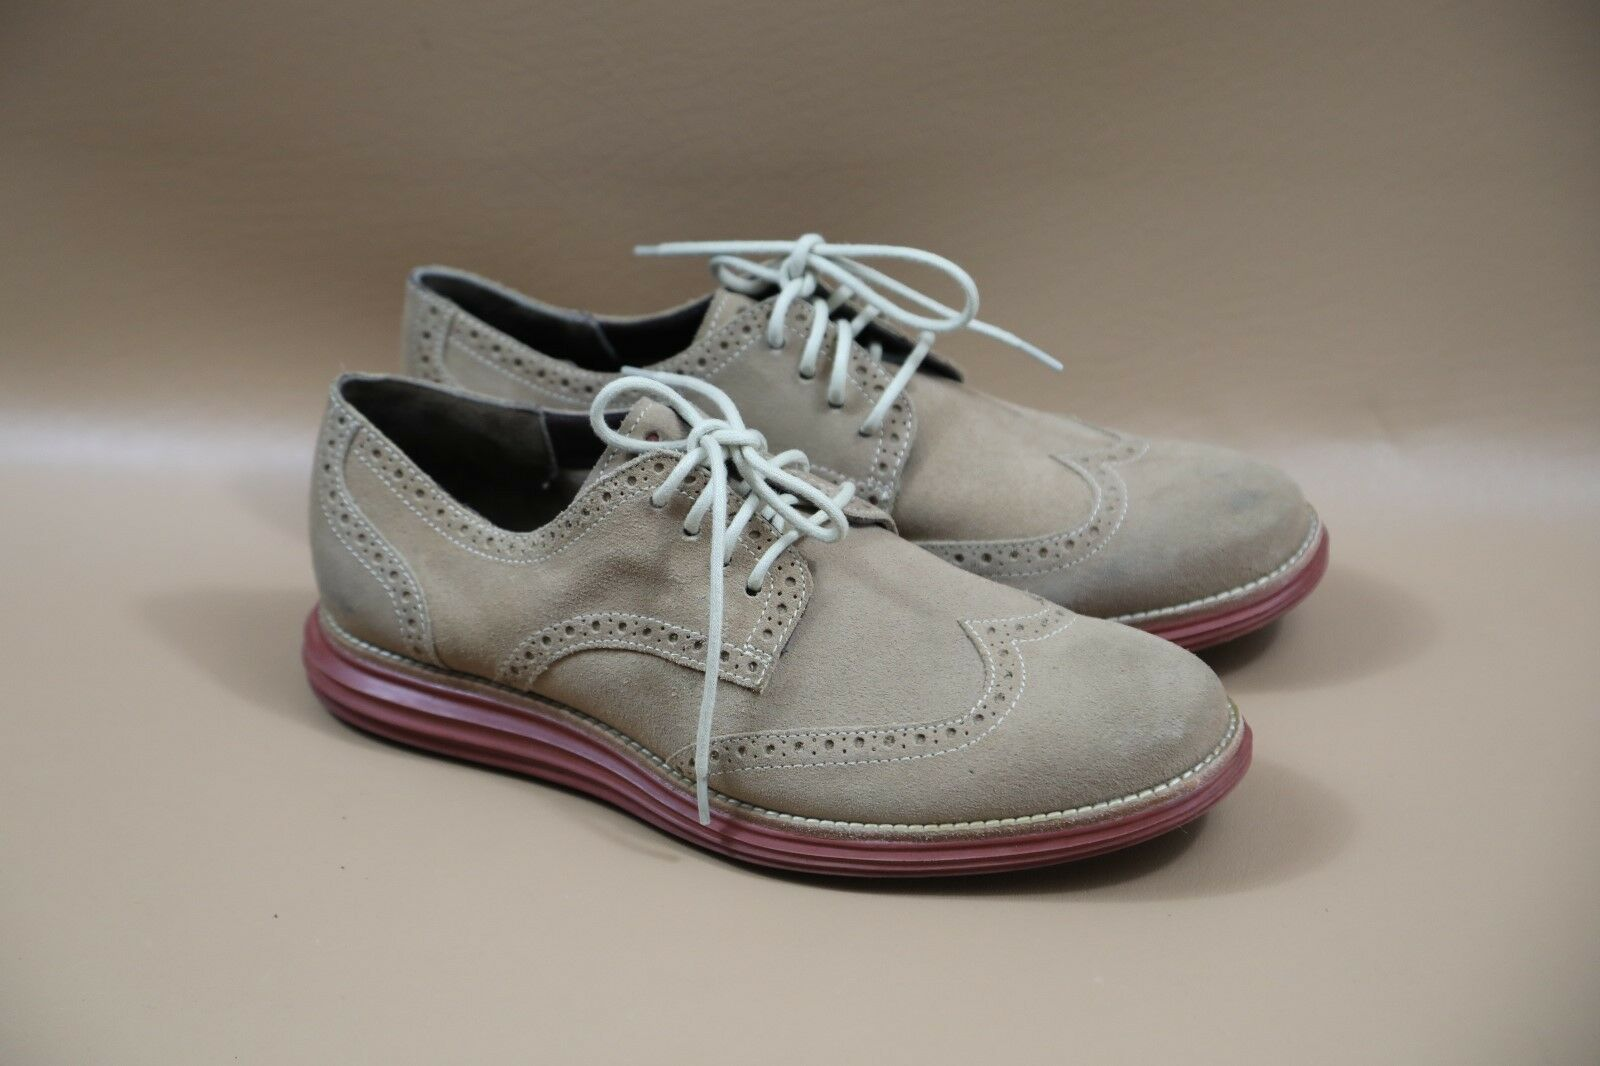 58b52ee28a325a Cole Haan Suede Wing Tip Oxford Shoes Size 9.5 9.5 9.5 3d4b3b ...